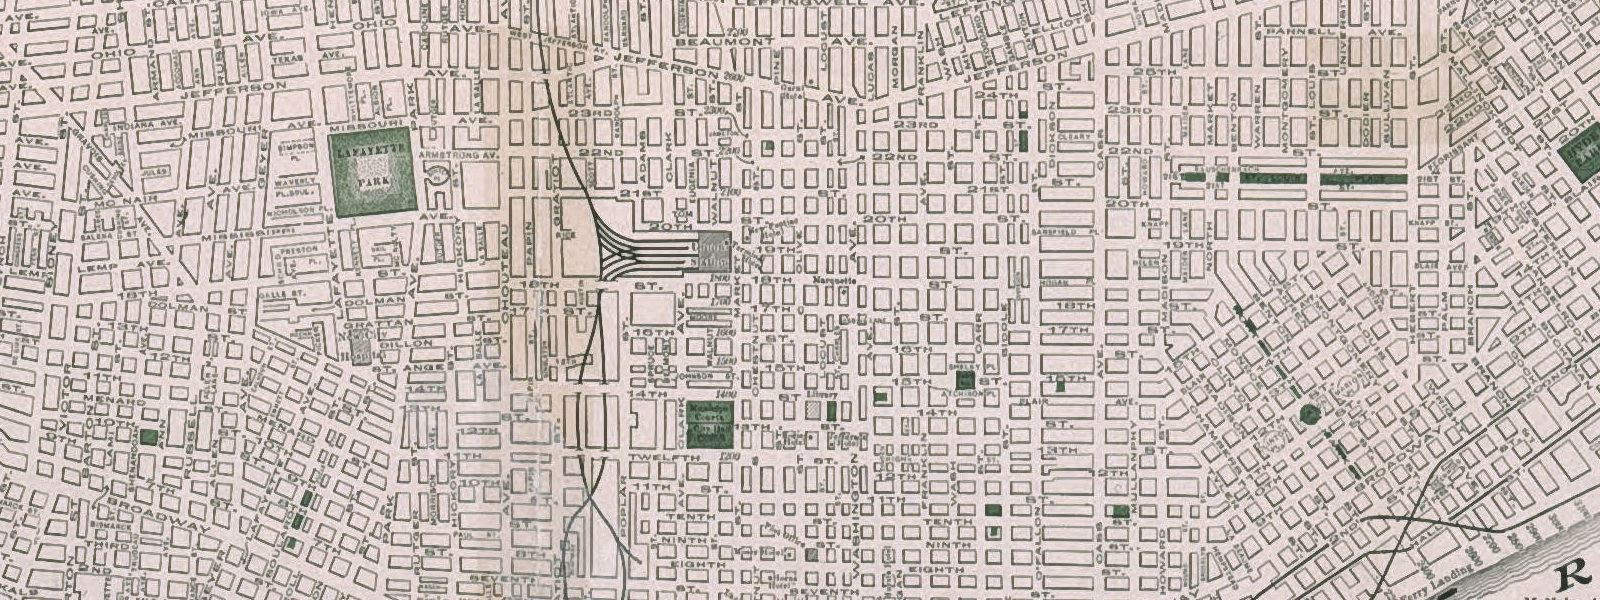 map of stl 1916 cropped